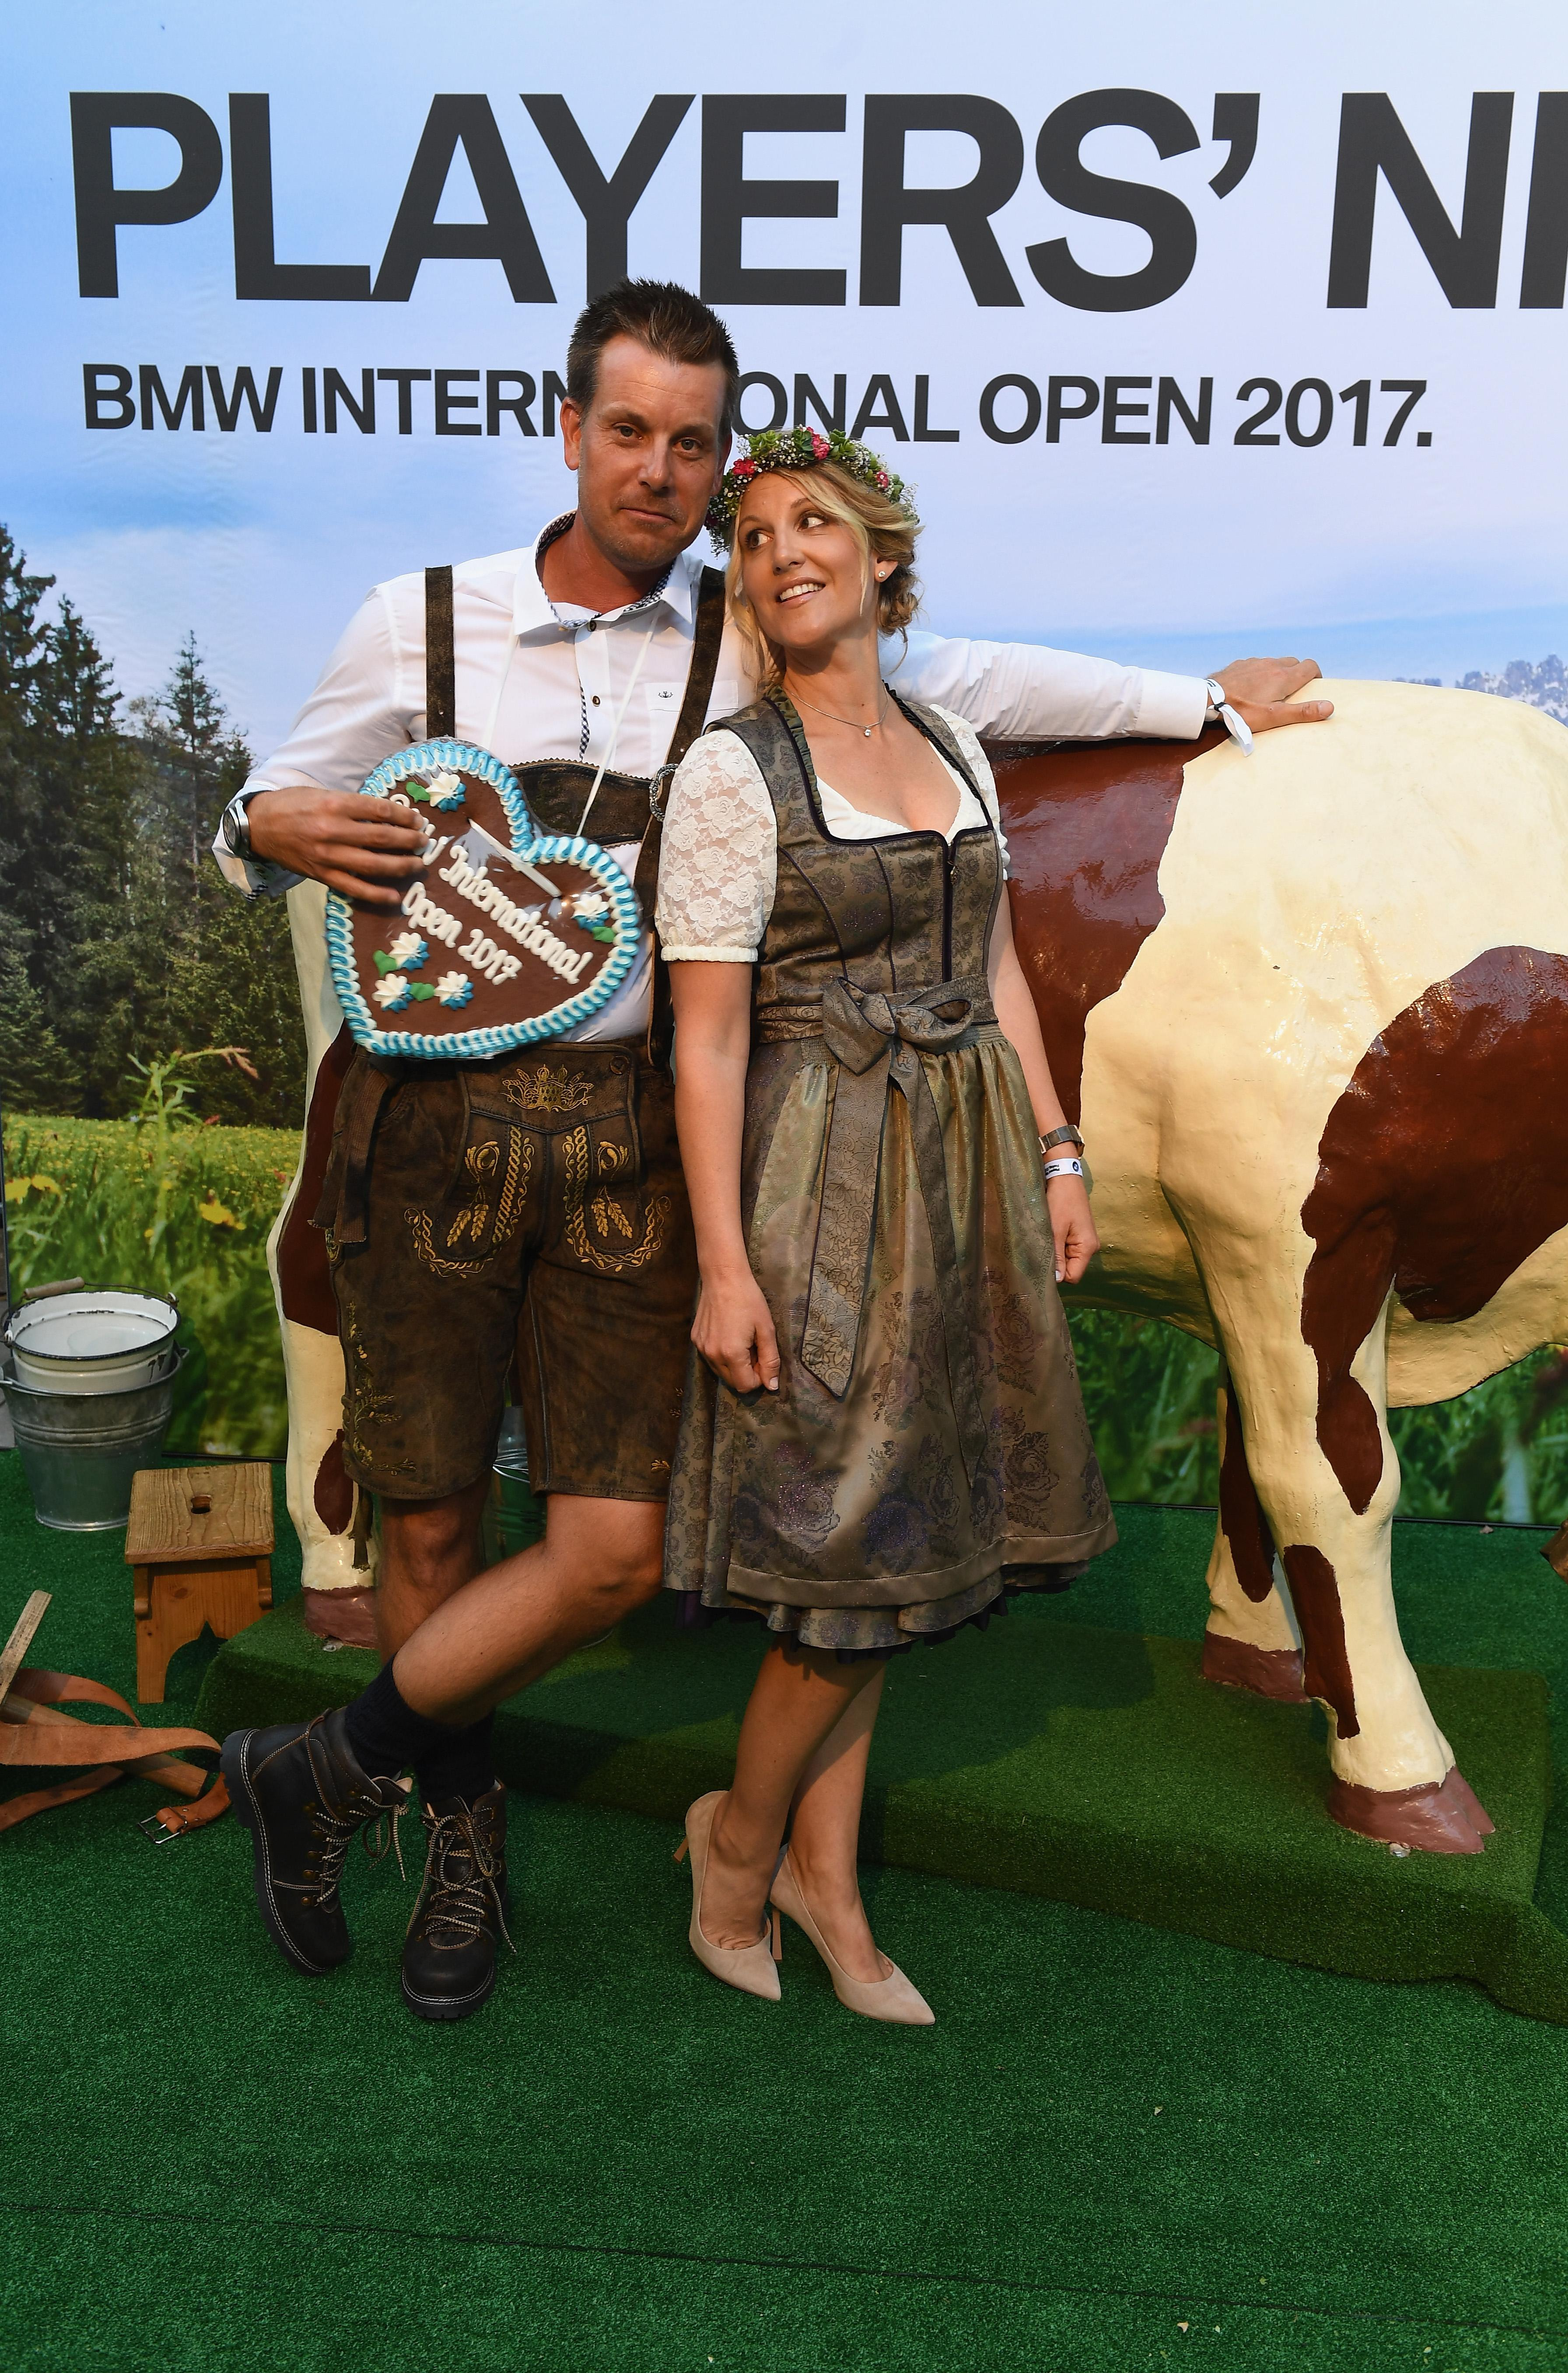 The couple together at the BMW Open Players Night in June